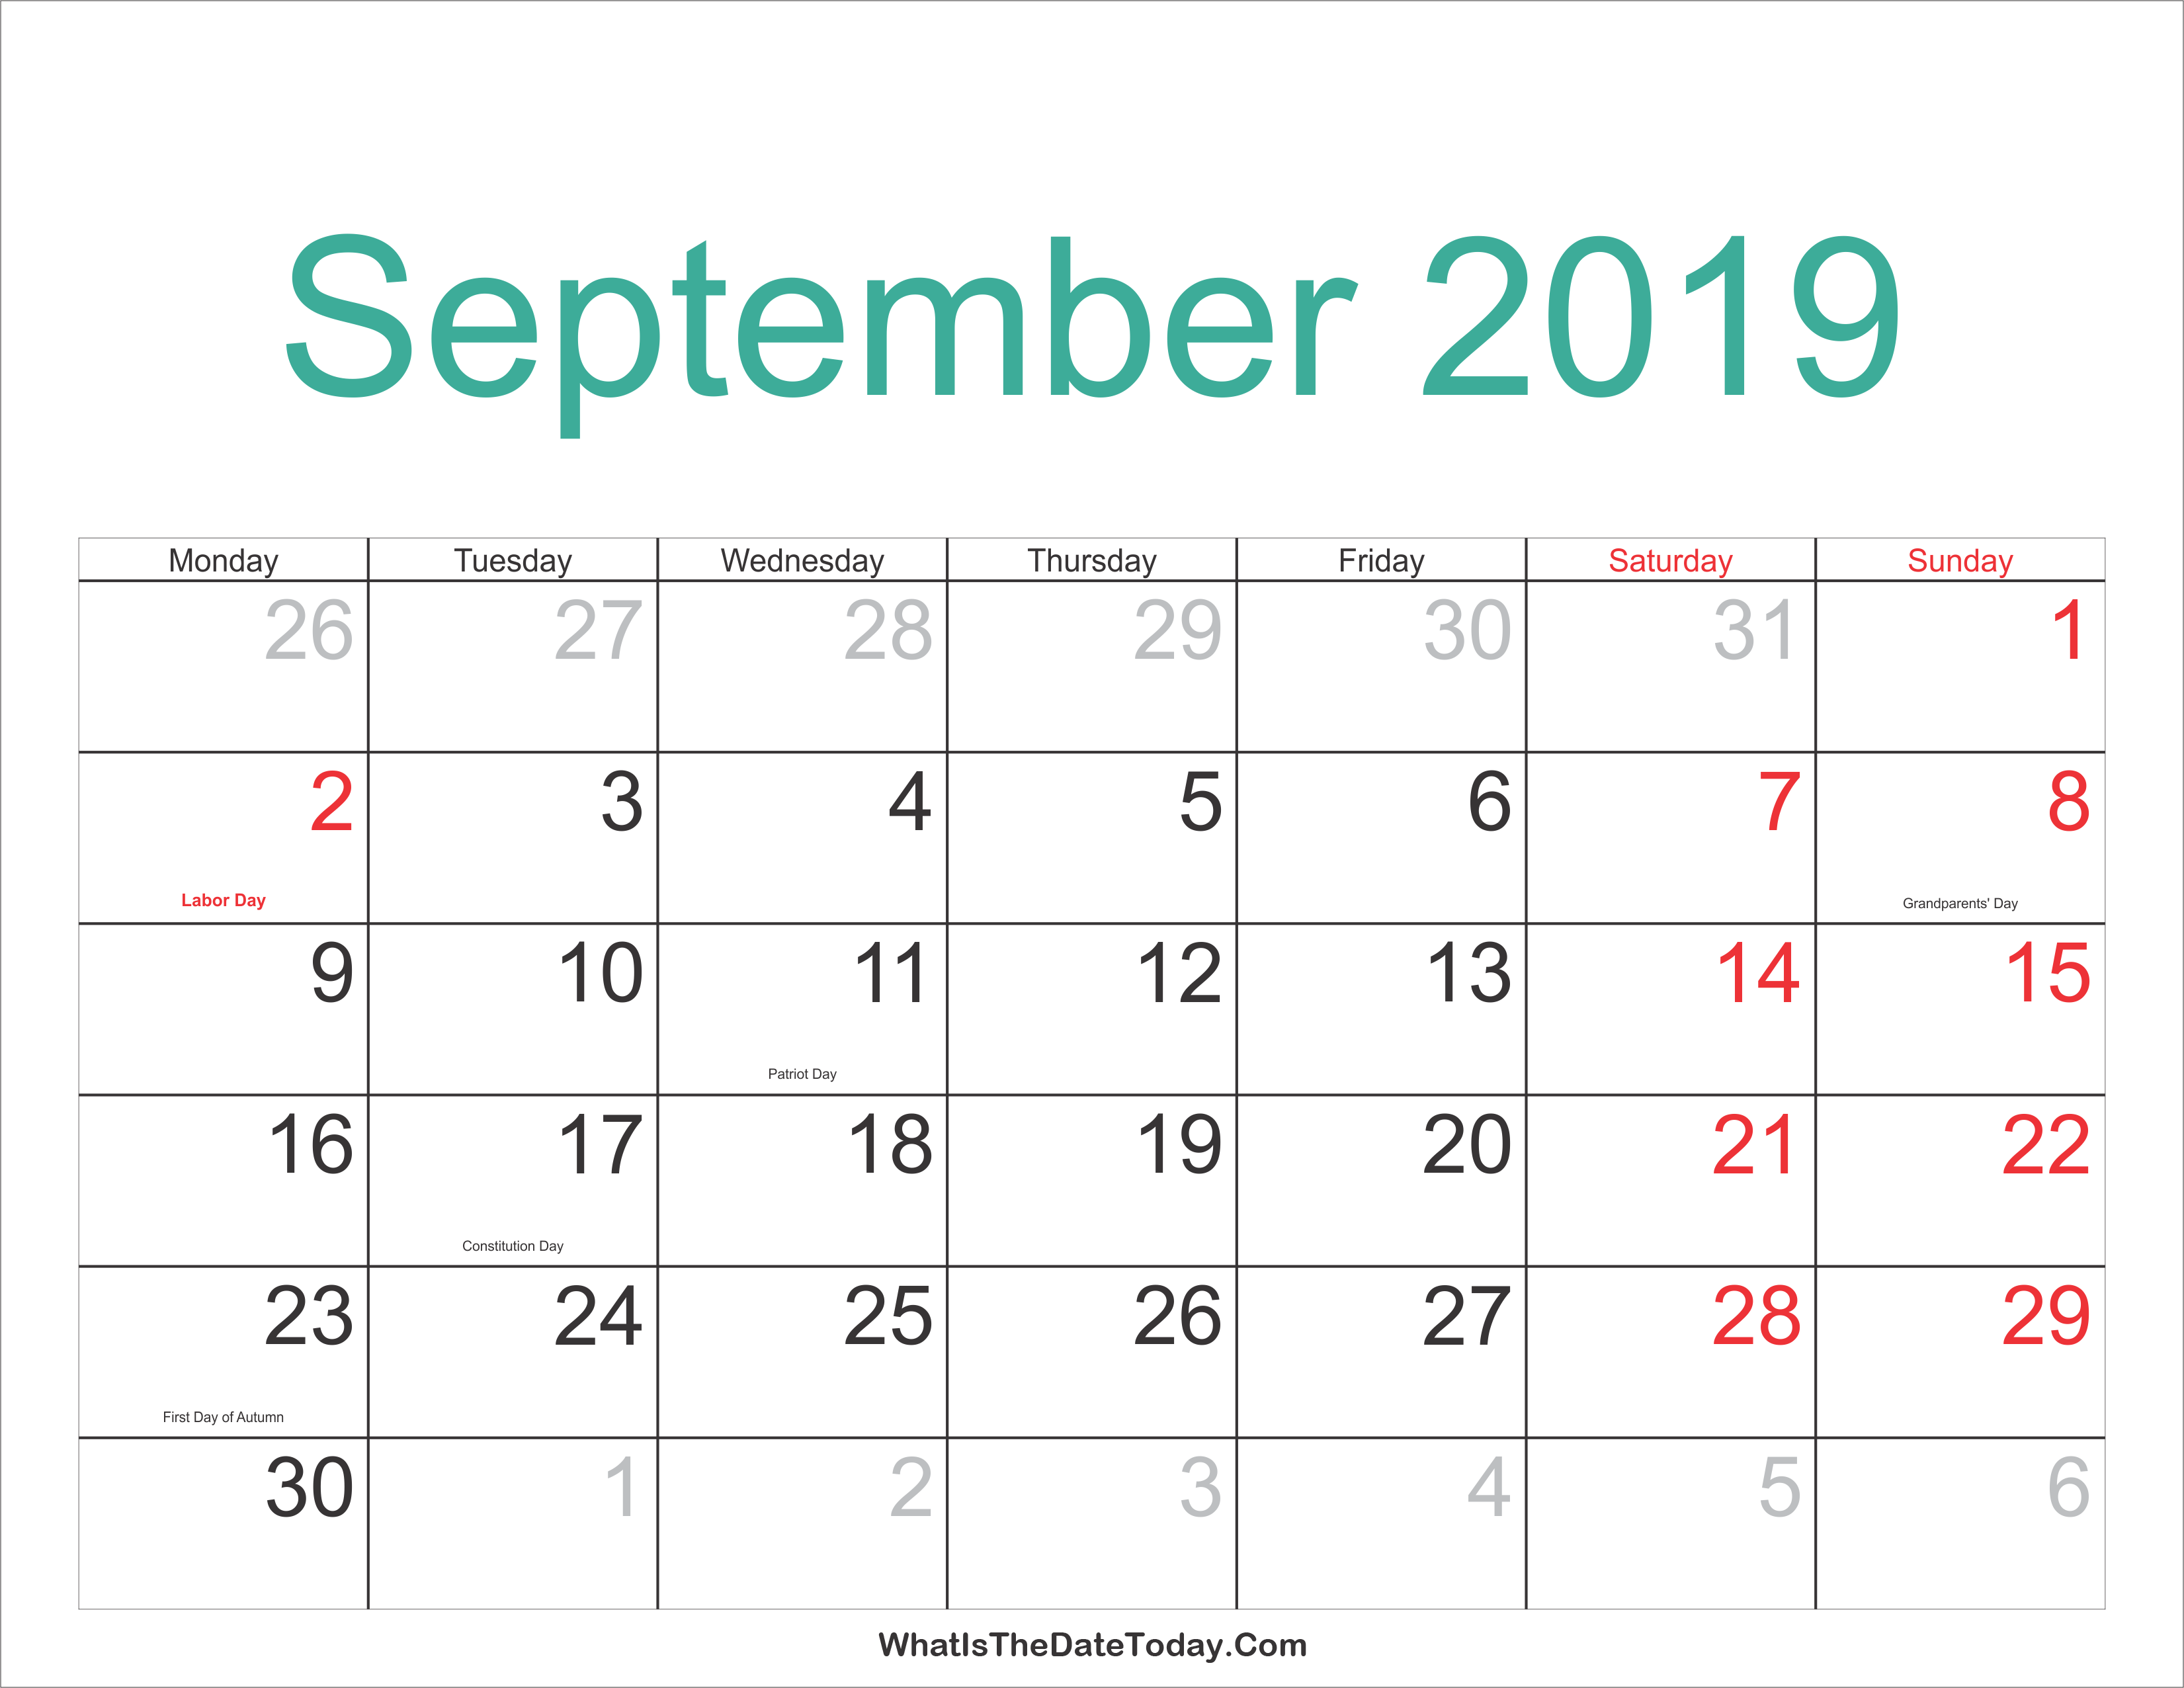 September 2019 Jewish Calendar September 2019 Calendar Printable with Holidays